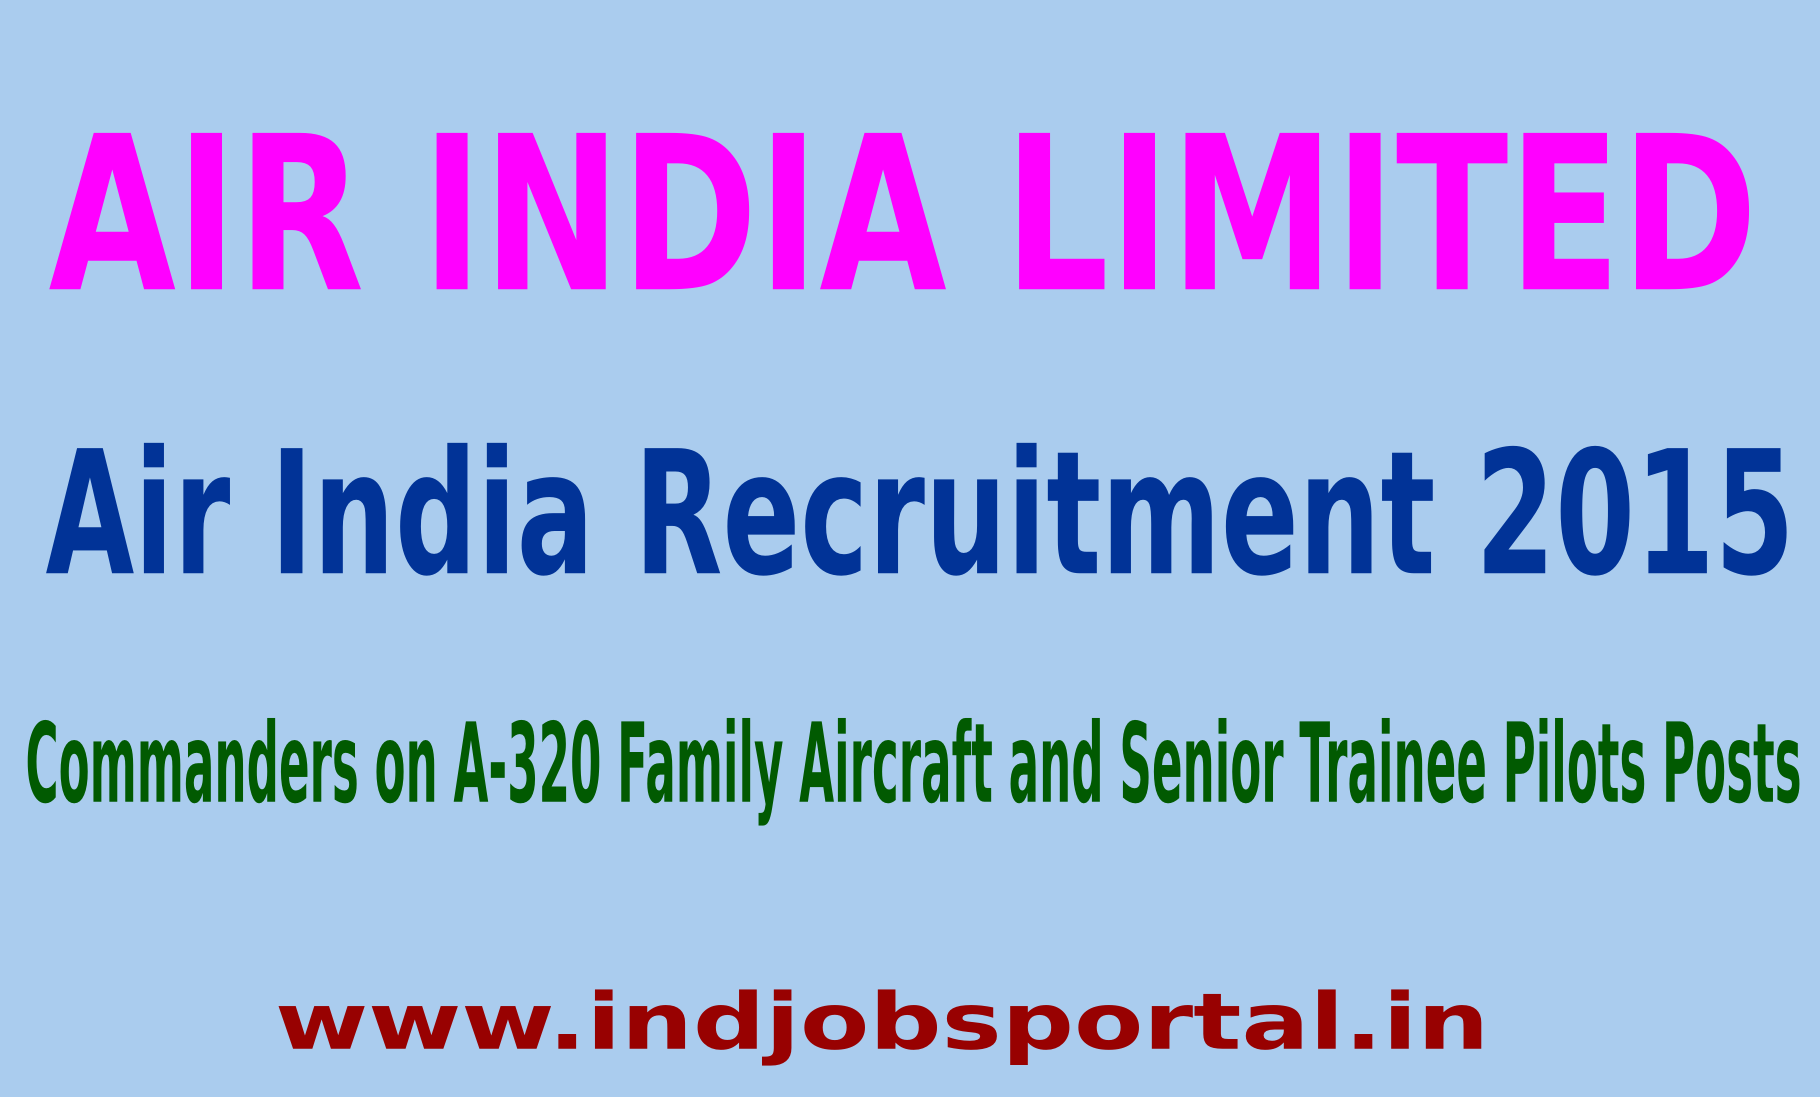 Air India Recruitment 2015 For 197 Commanders on A-320 Family Aircraft and Senior Trainee Pilots Posts